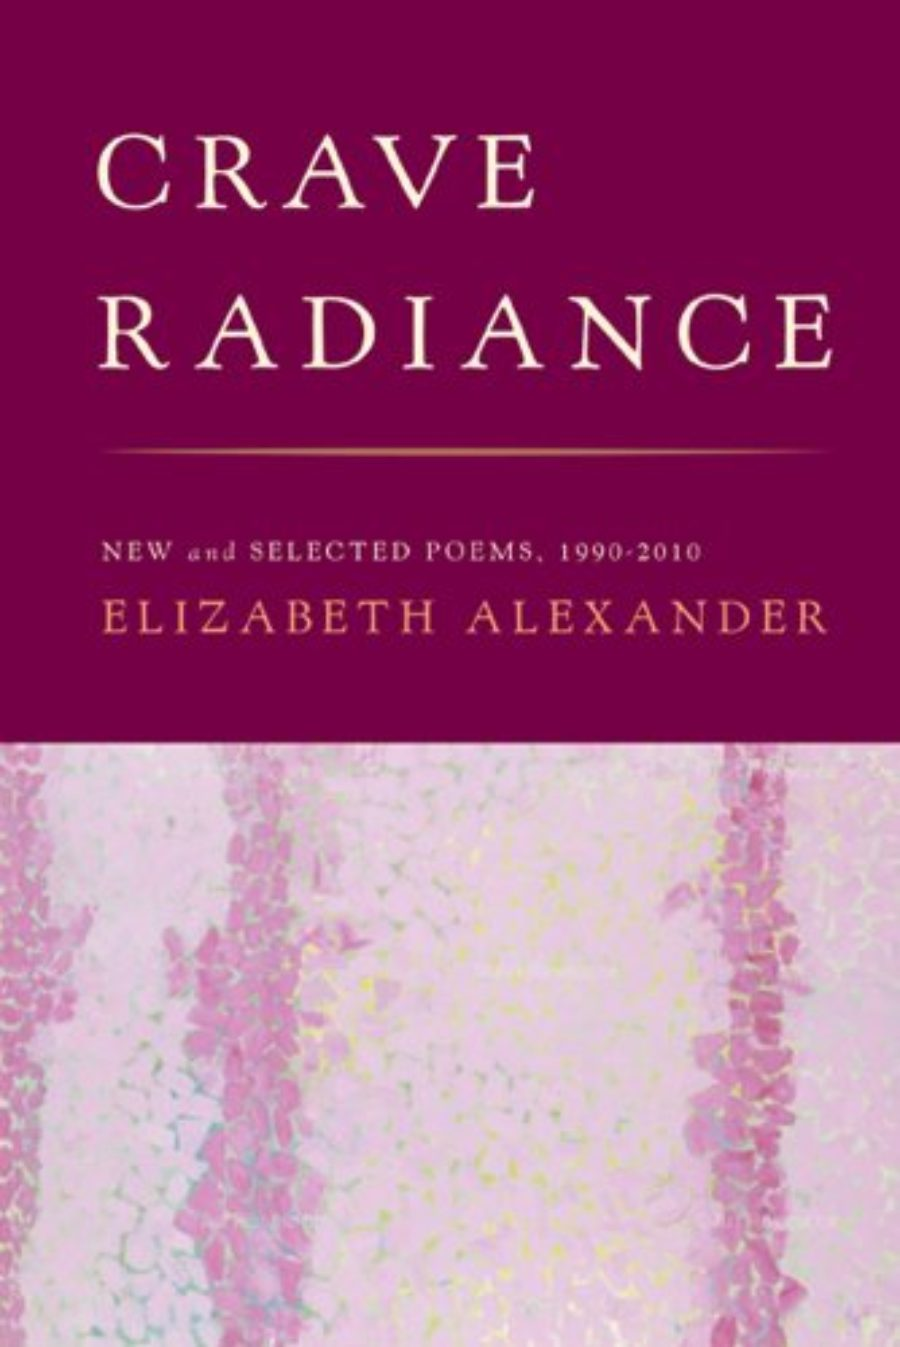 Cover of Crave Radiance: New and Selected Poems 1990-2010